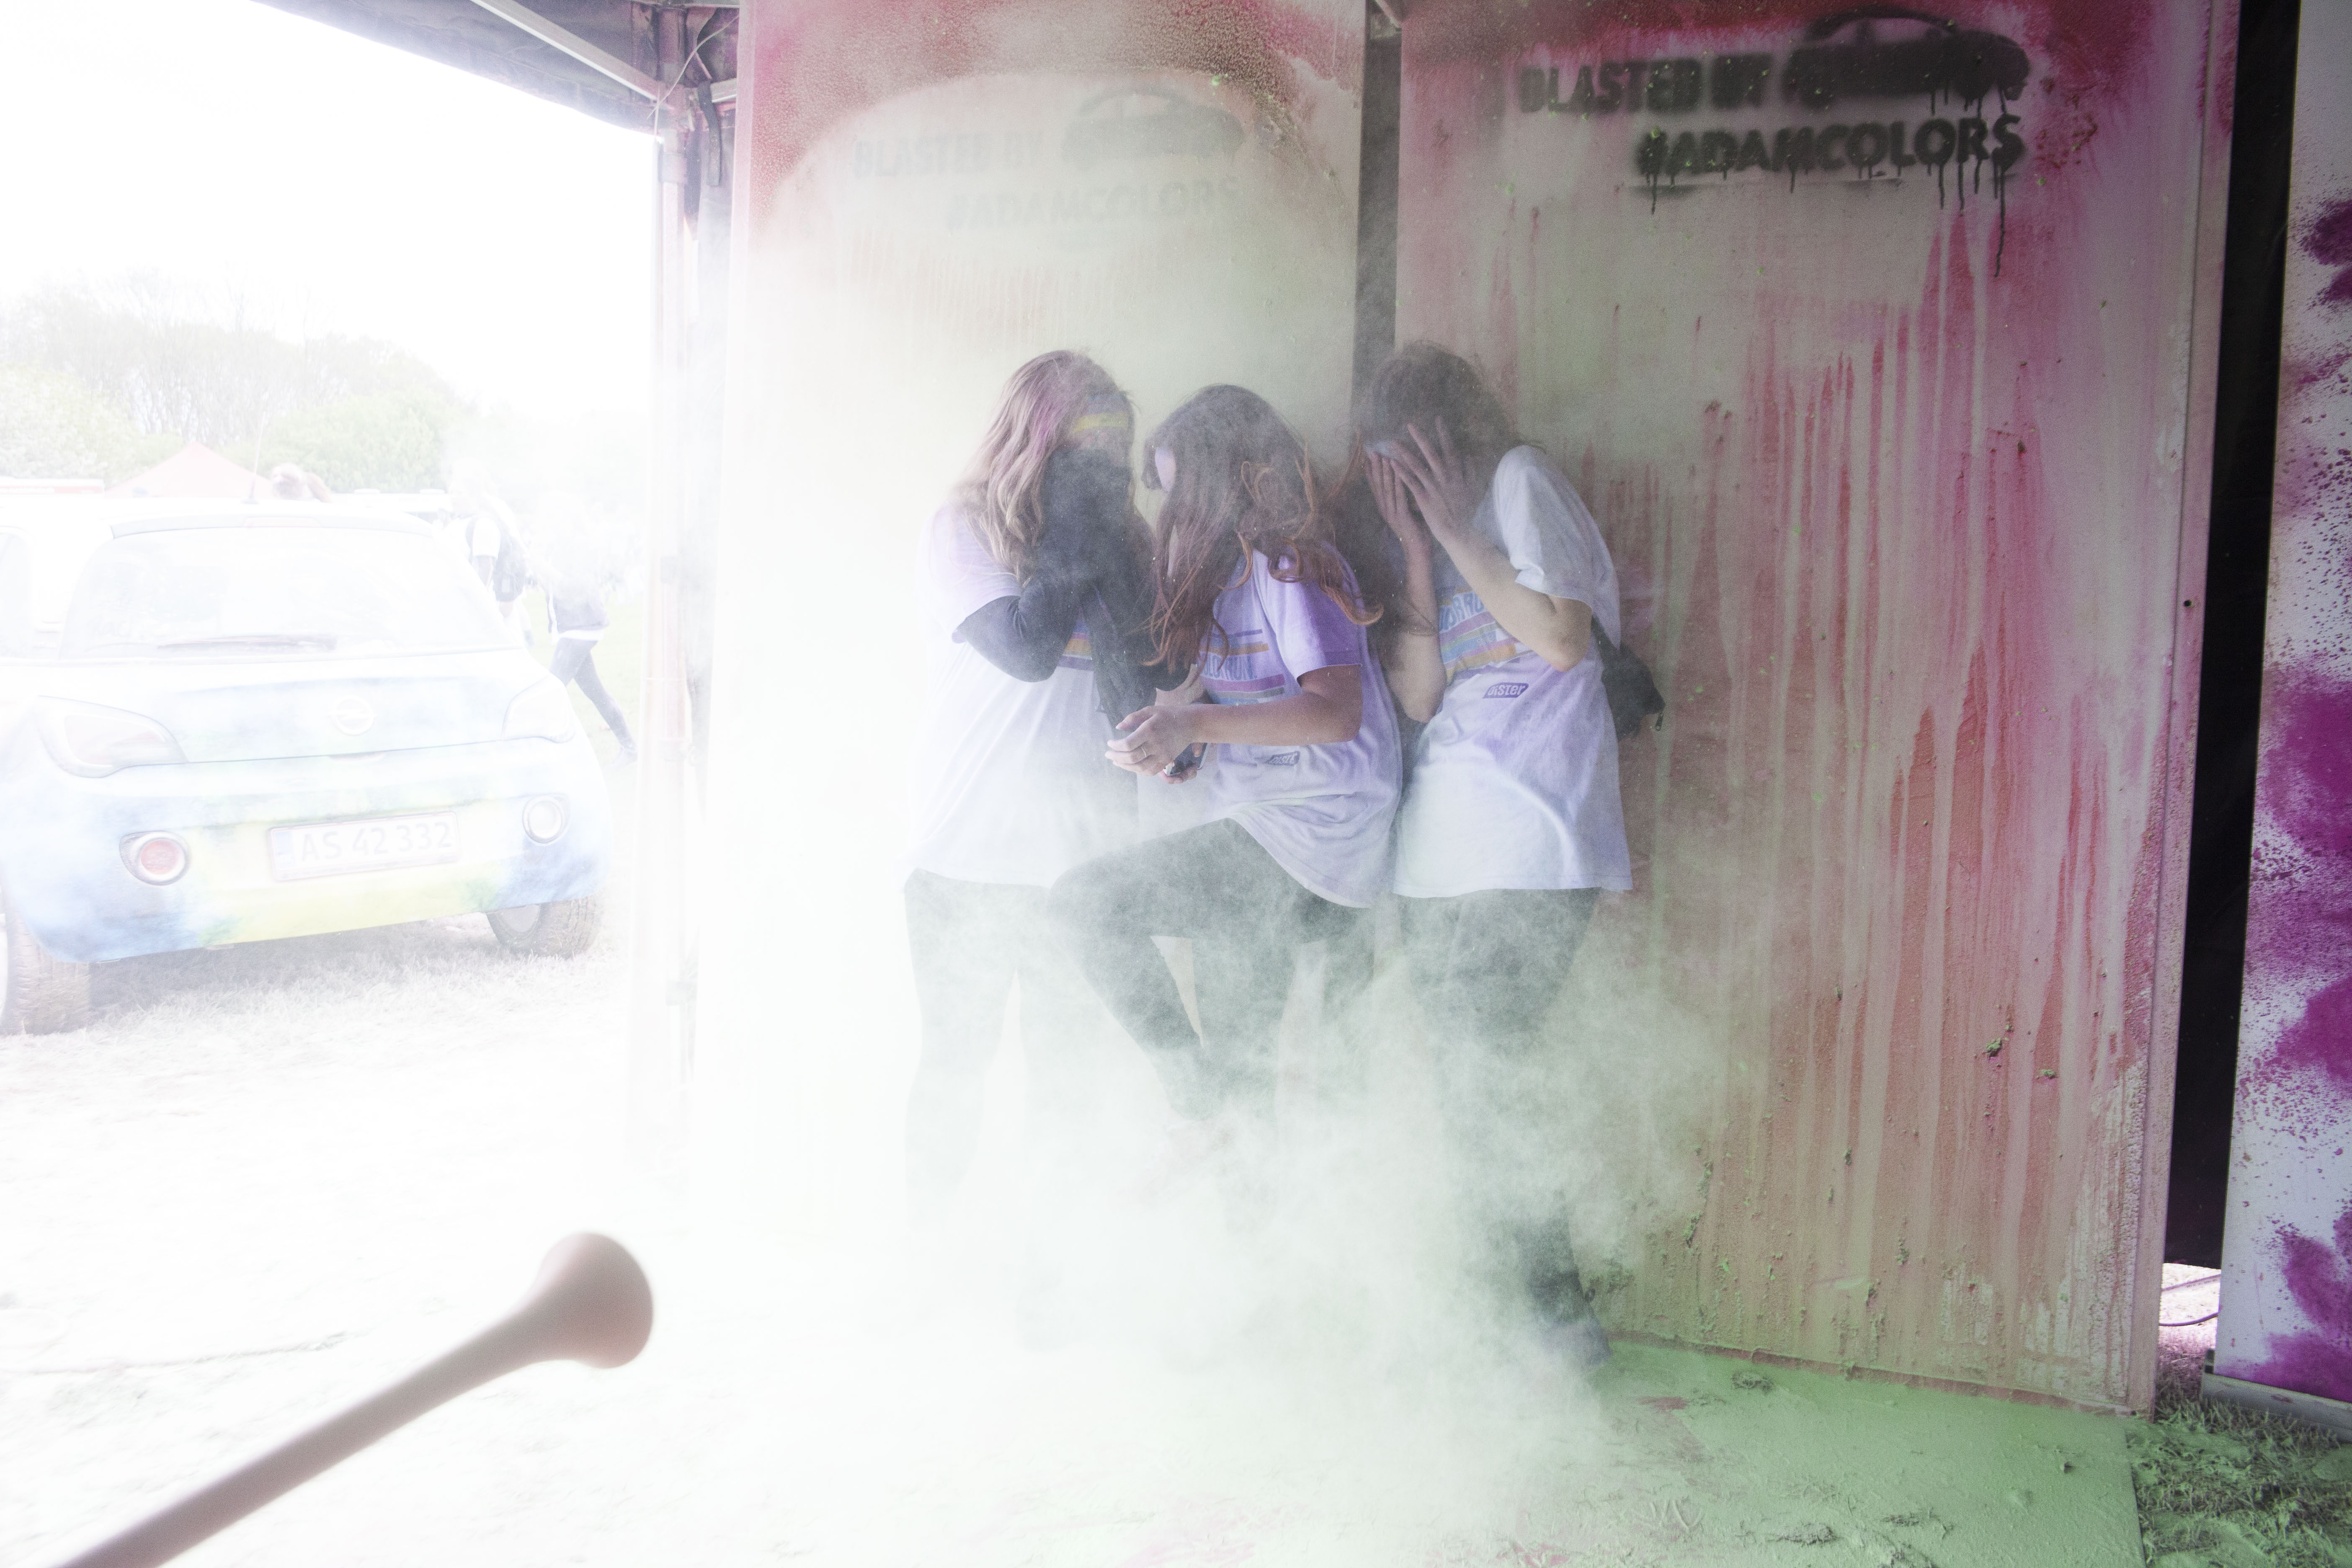 TheColorRun2015_HelenaLundquist_mindre_24